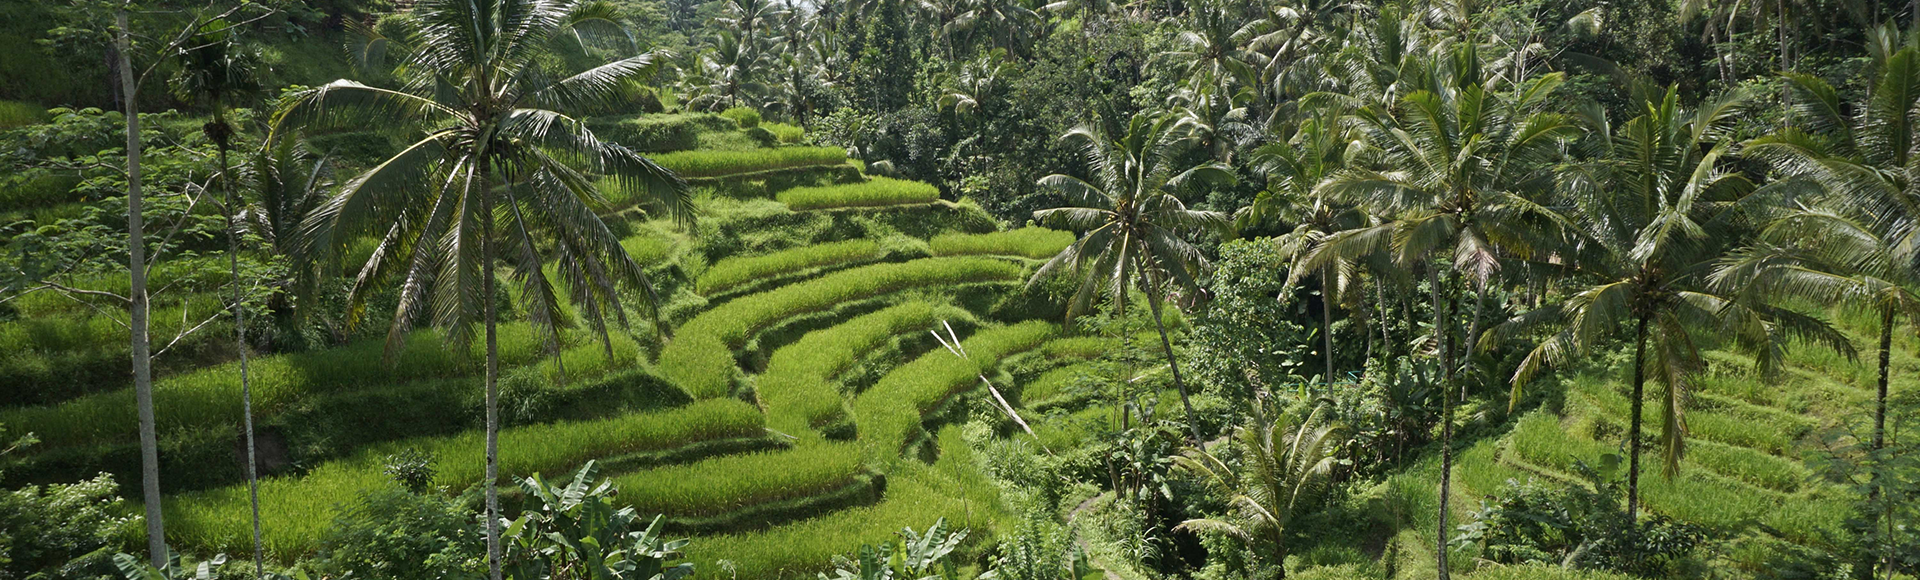 Culture & Spirit Yoga Retreat: Ubud, Bali